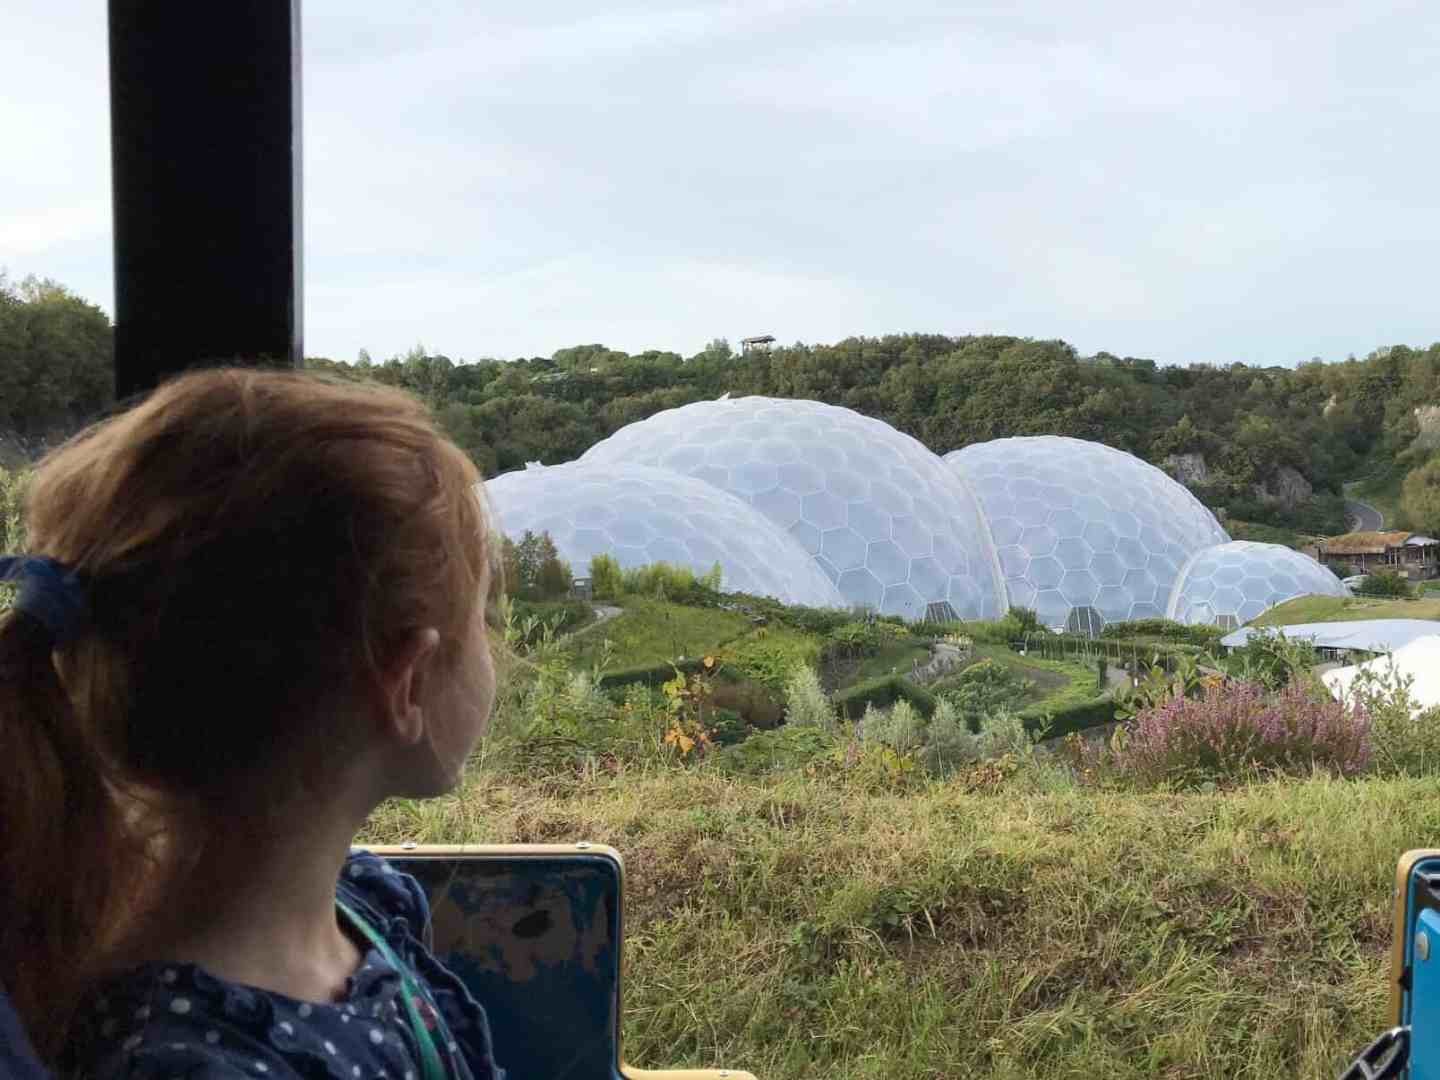 The Eden Project Biomes viewed from the land train